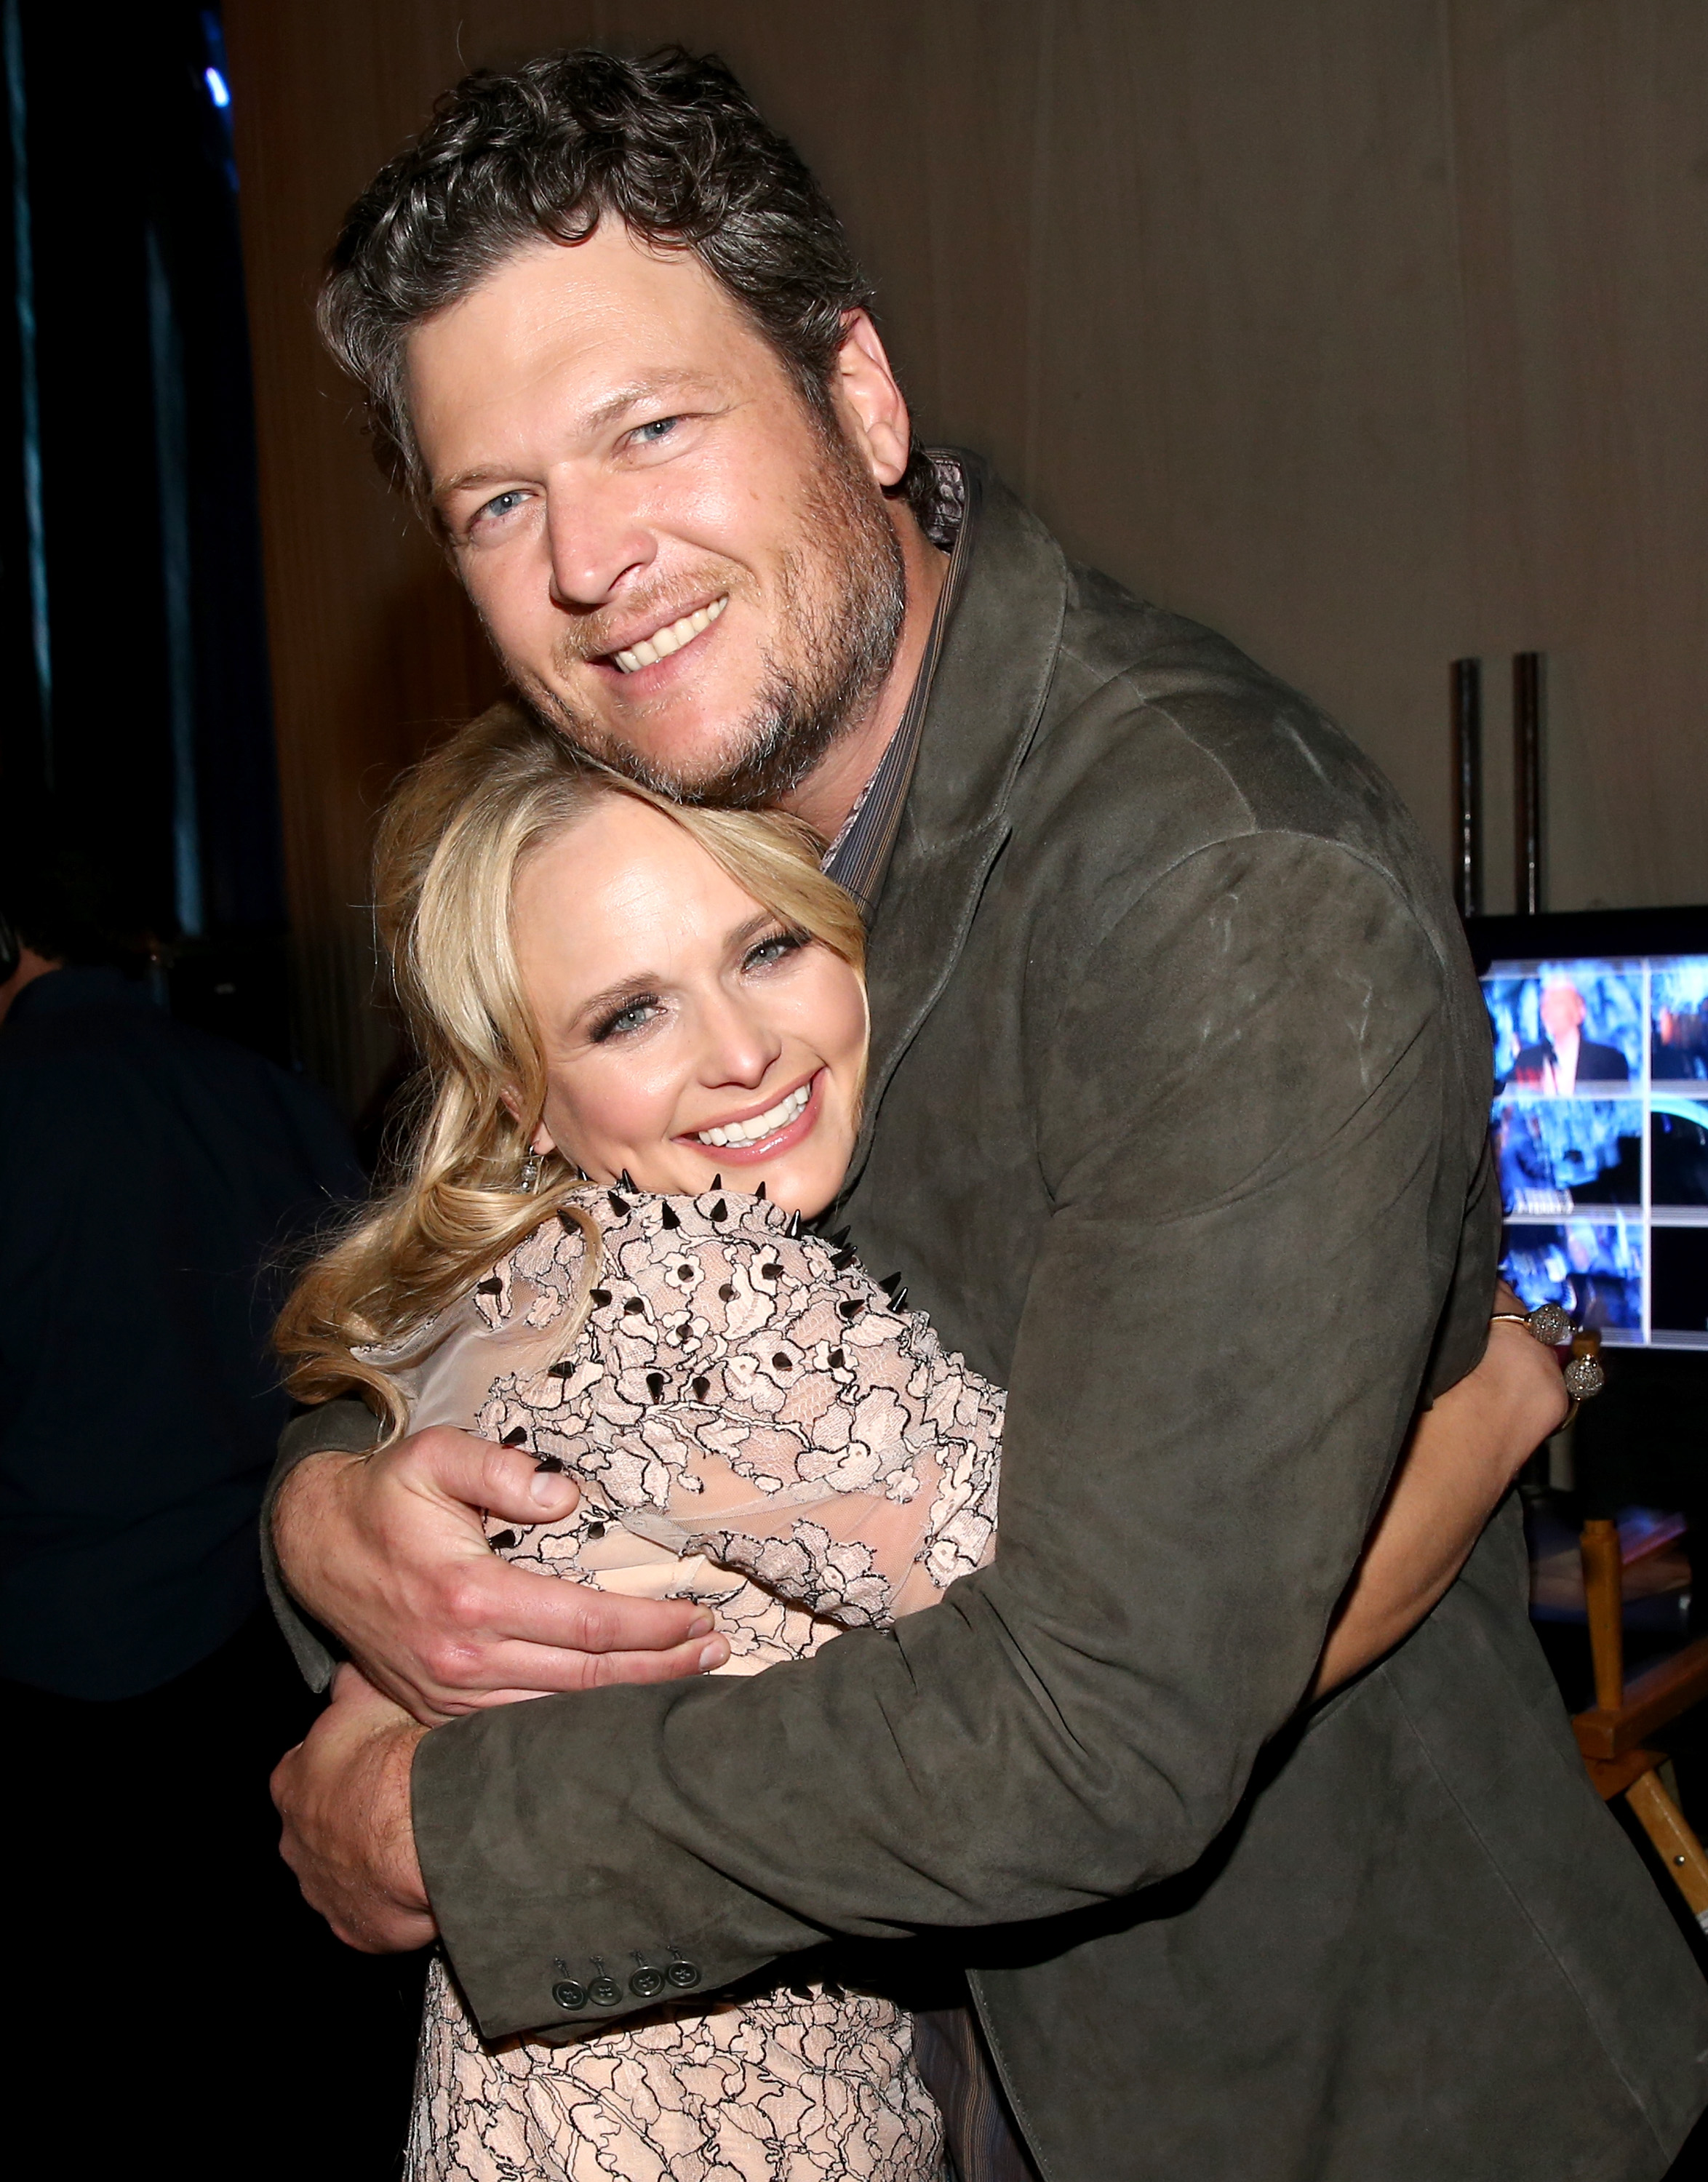 miranda and blake hugging